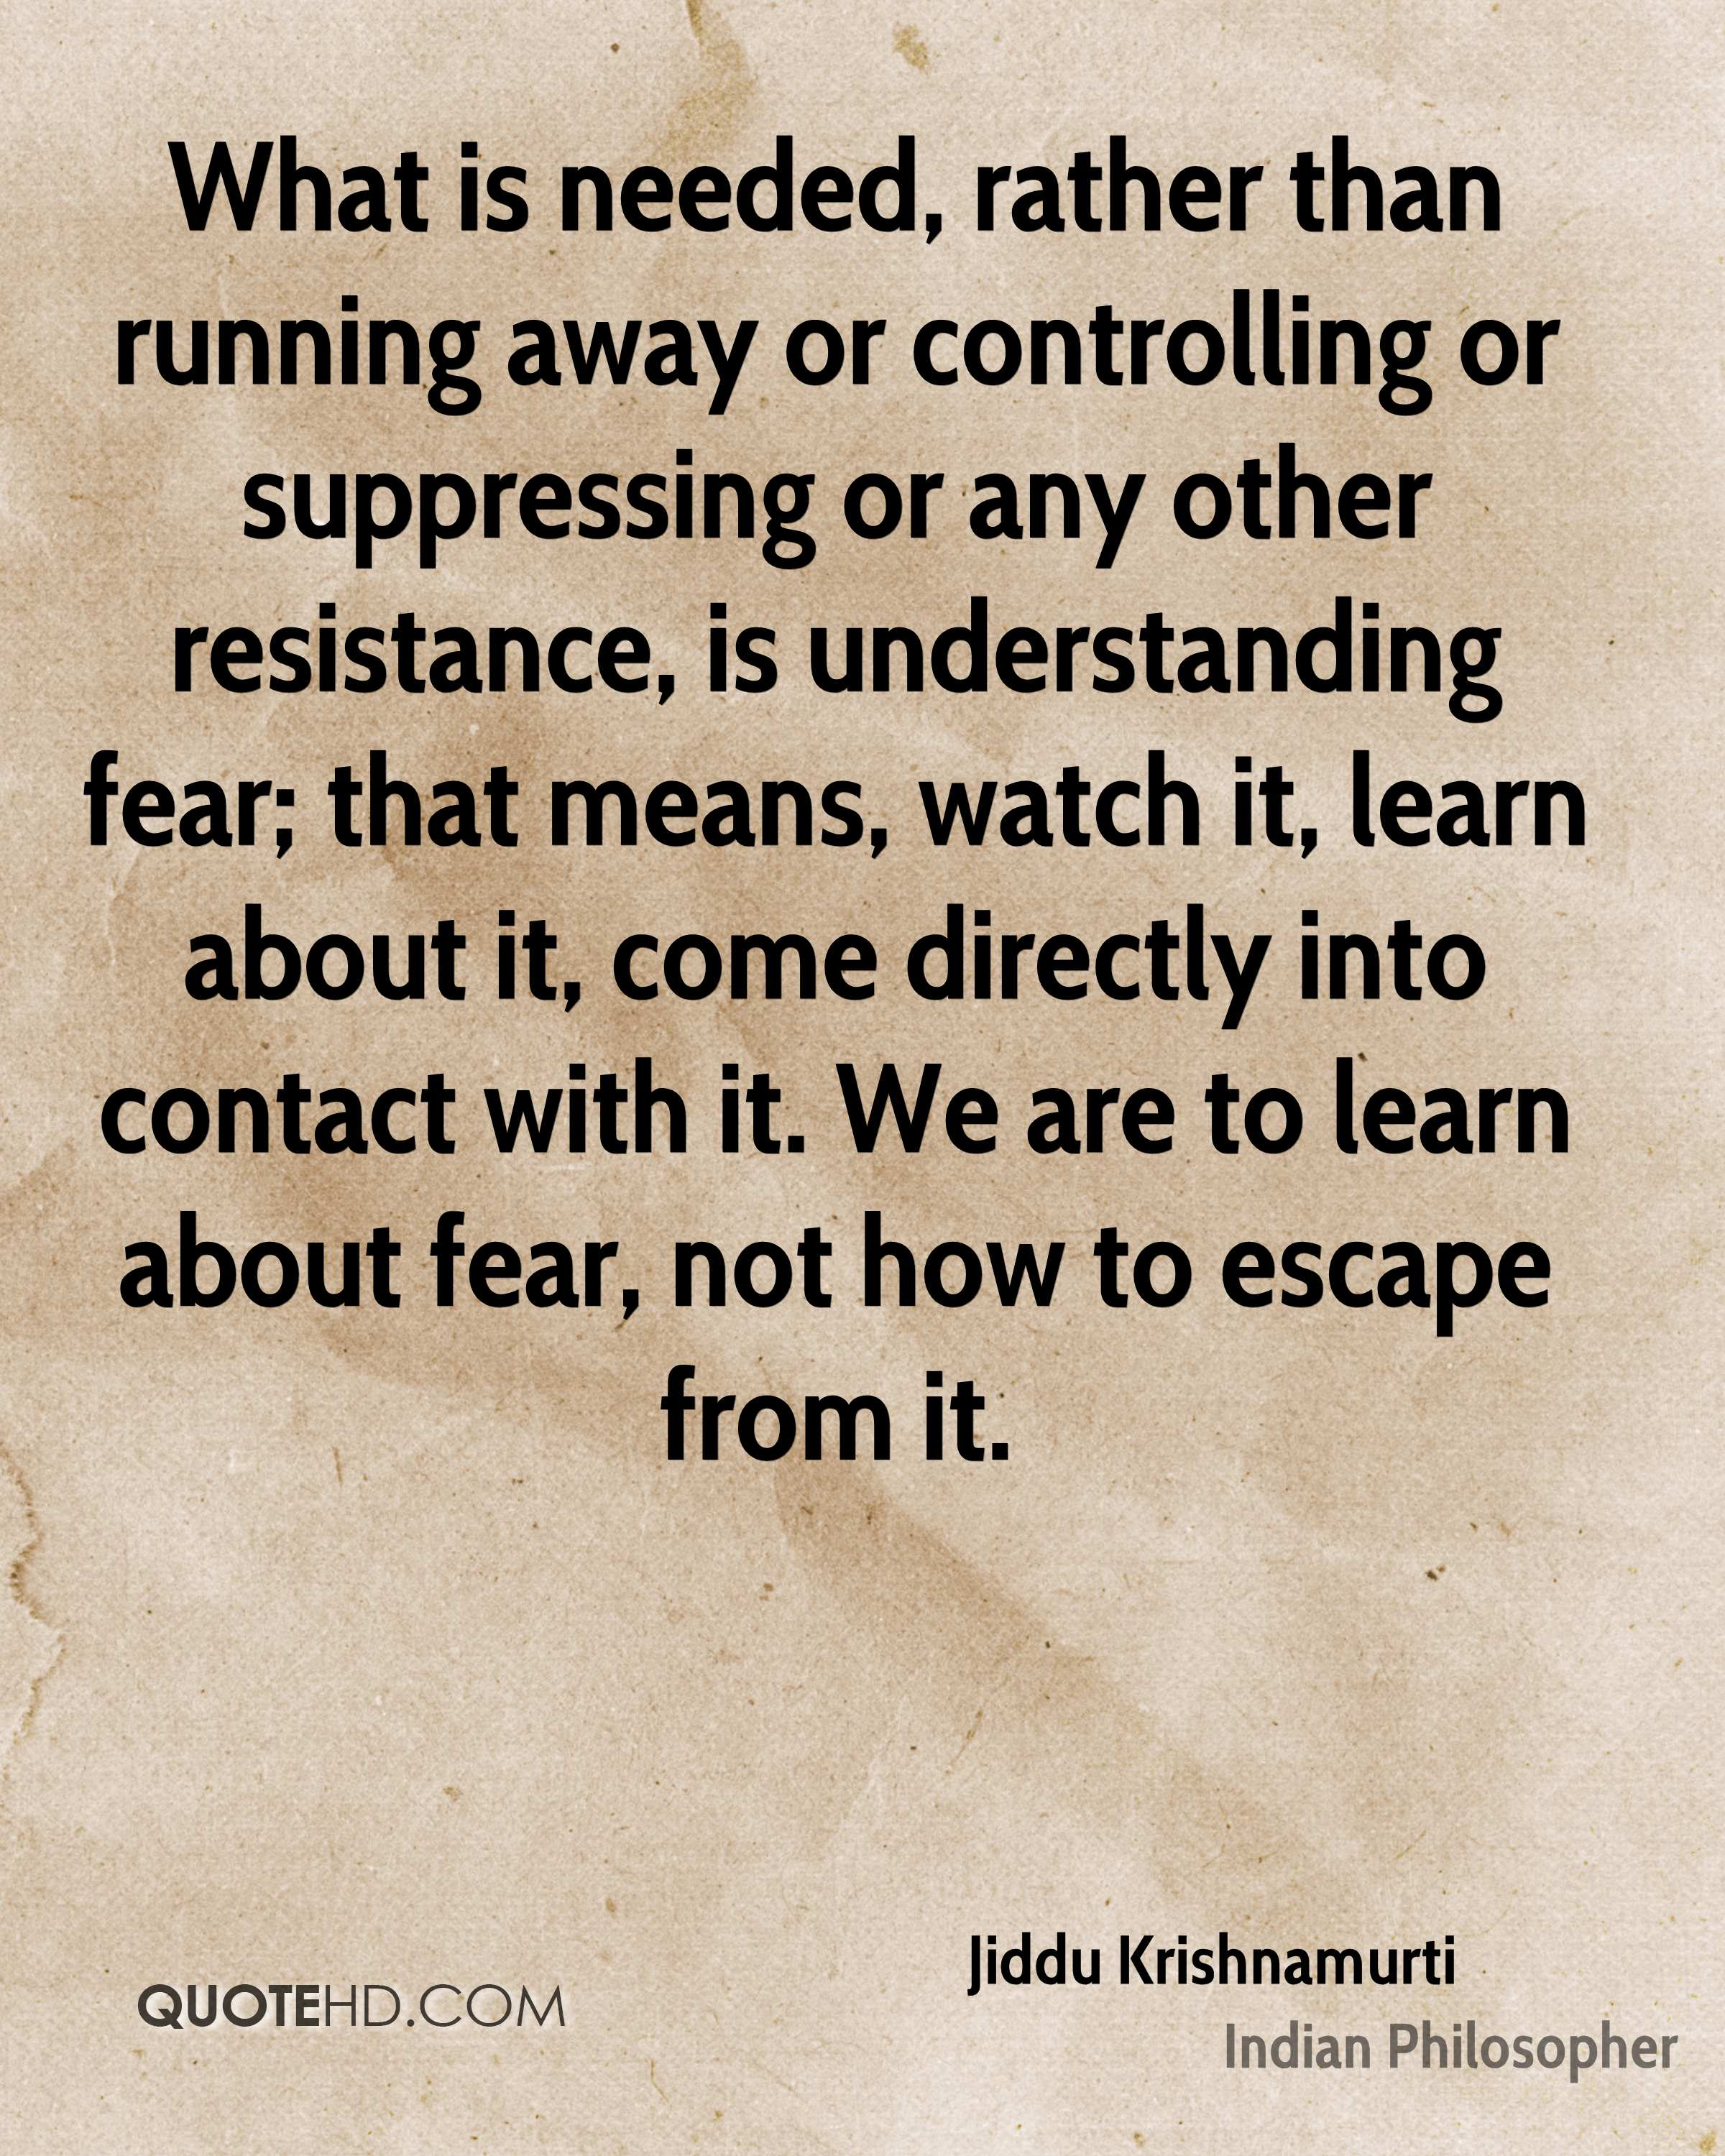 What is needed, rather than running away or controlling or suppressing or any other resistance, is understanding fear; that means, watch it, learn about it, come directly into contact with it. We are to learn about fear, not how to escape from it.